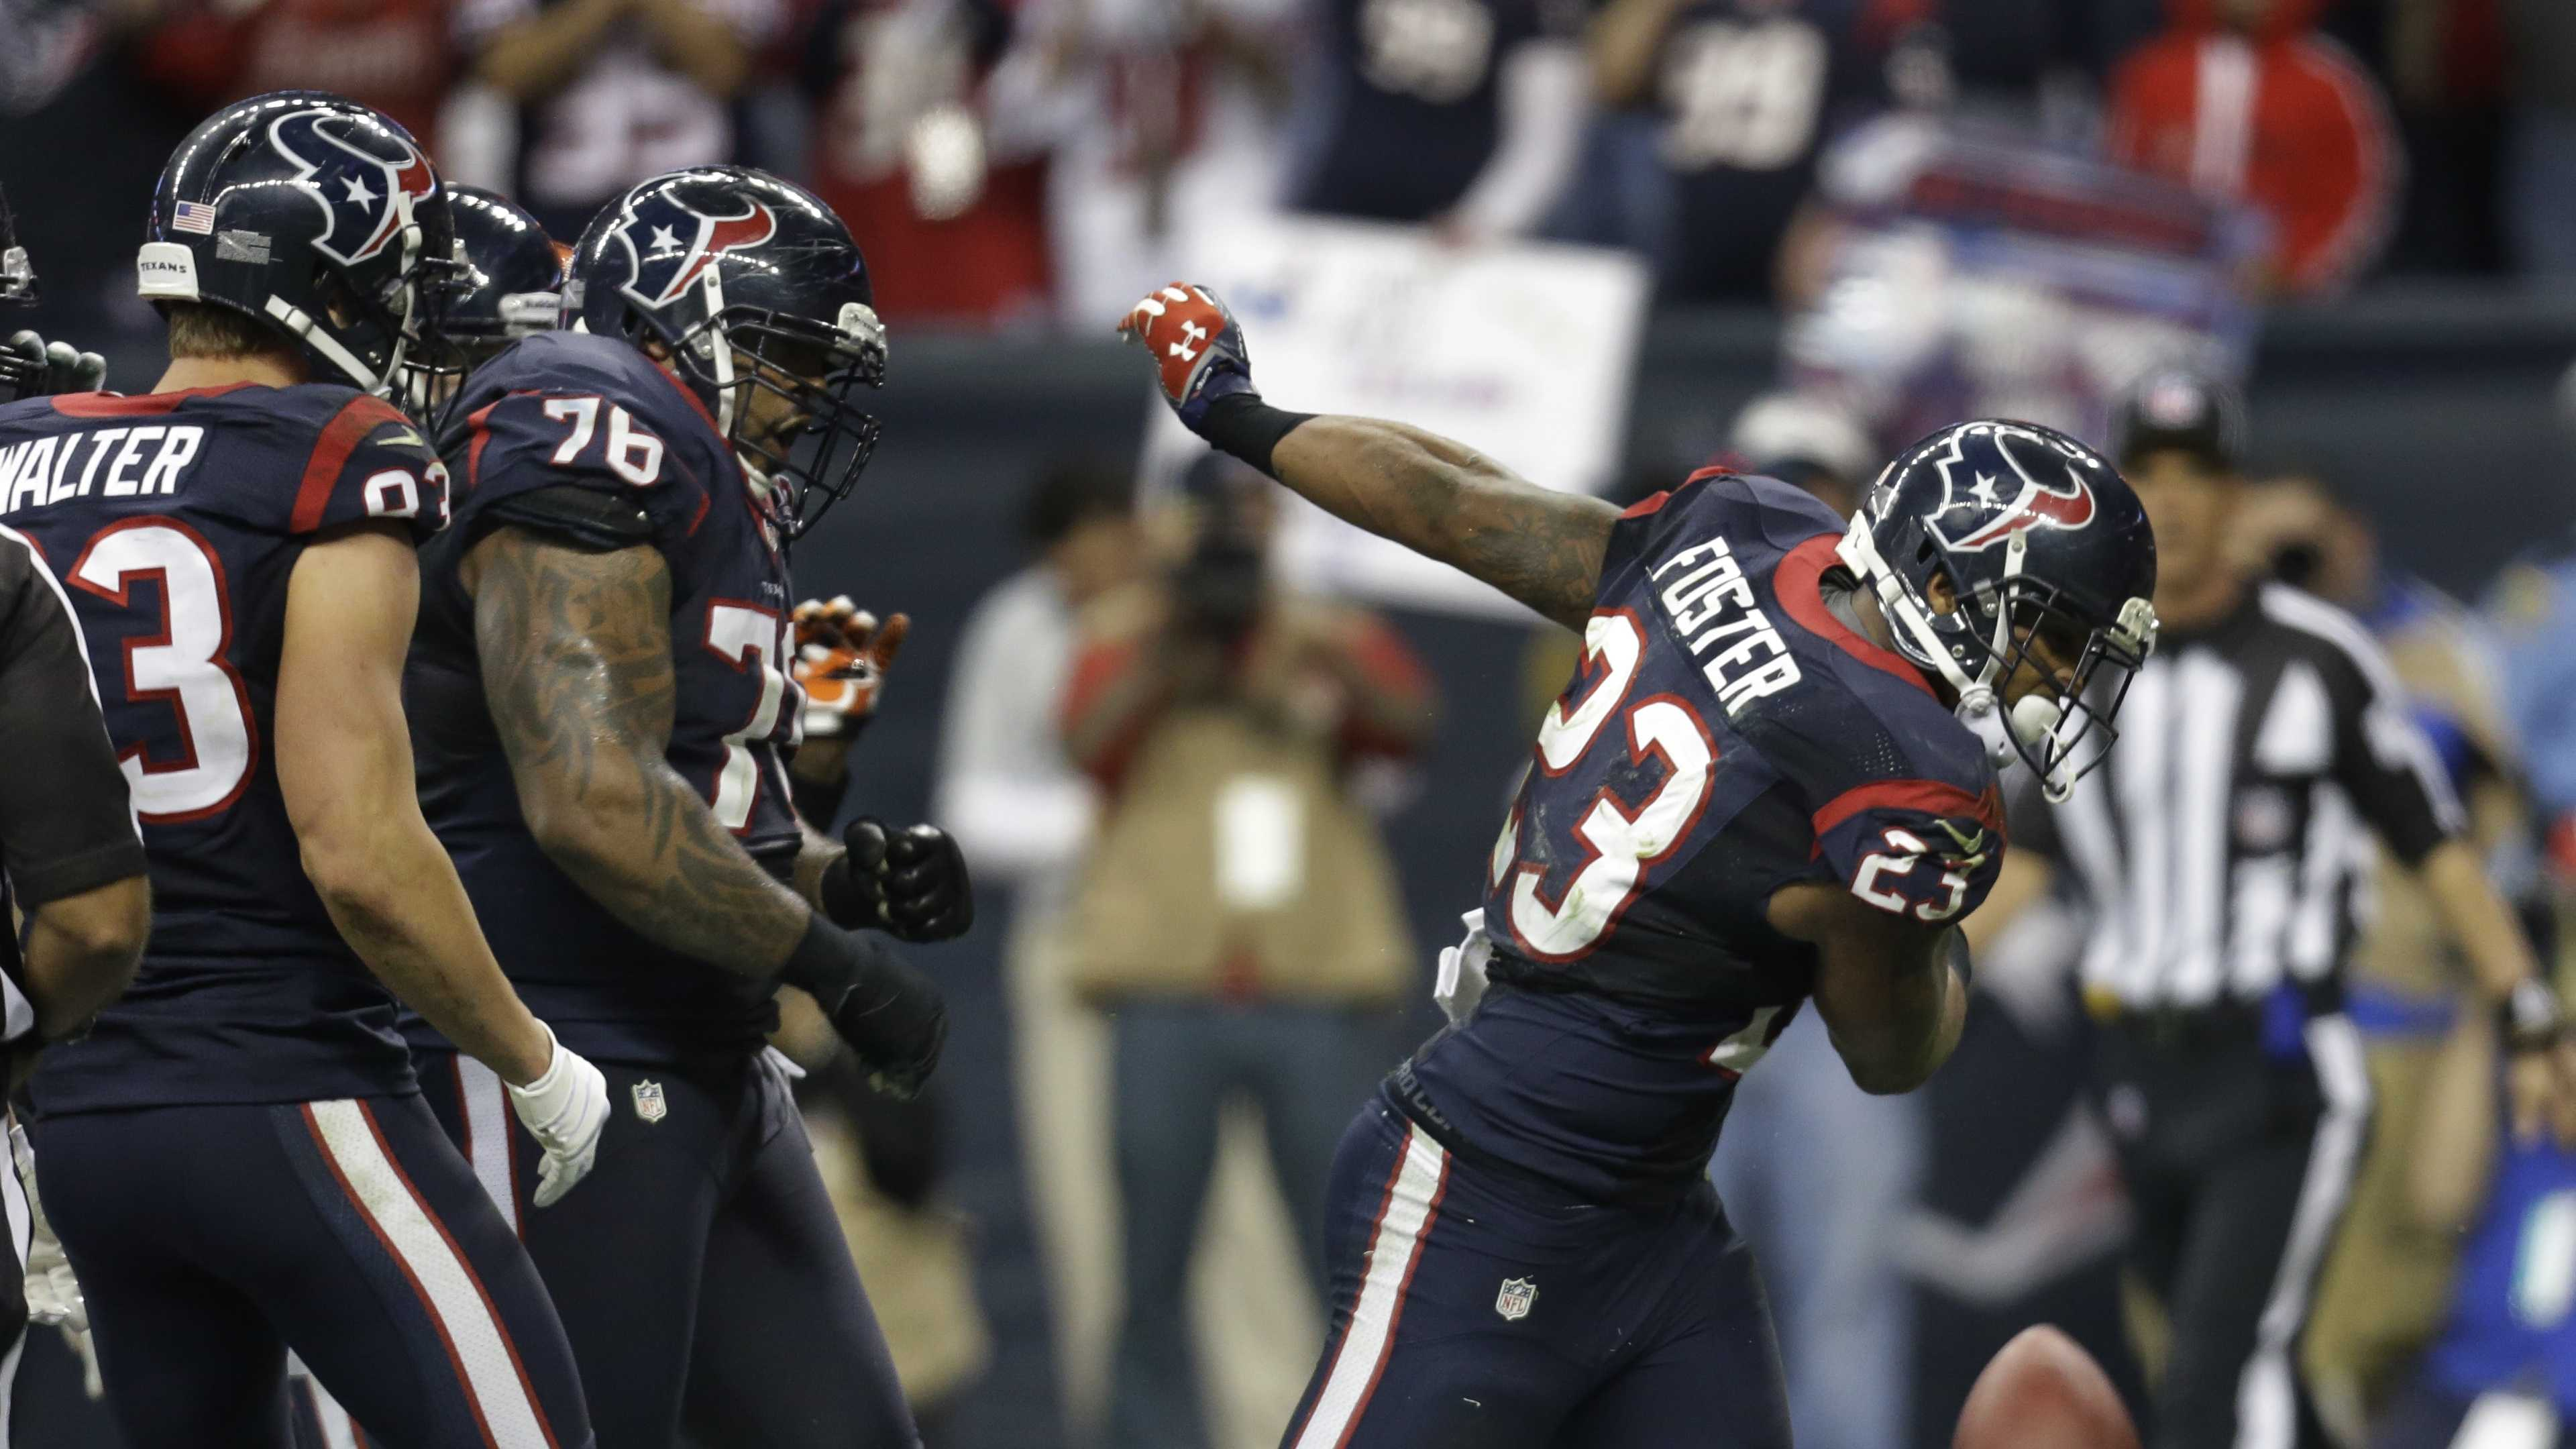 Houston Texans running back Arian Foster (23) celebrates his one-yard touchdown run against the Cincinnati Bengals.